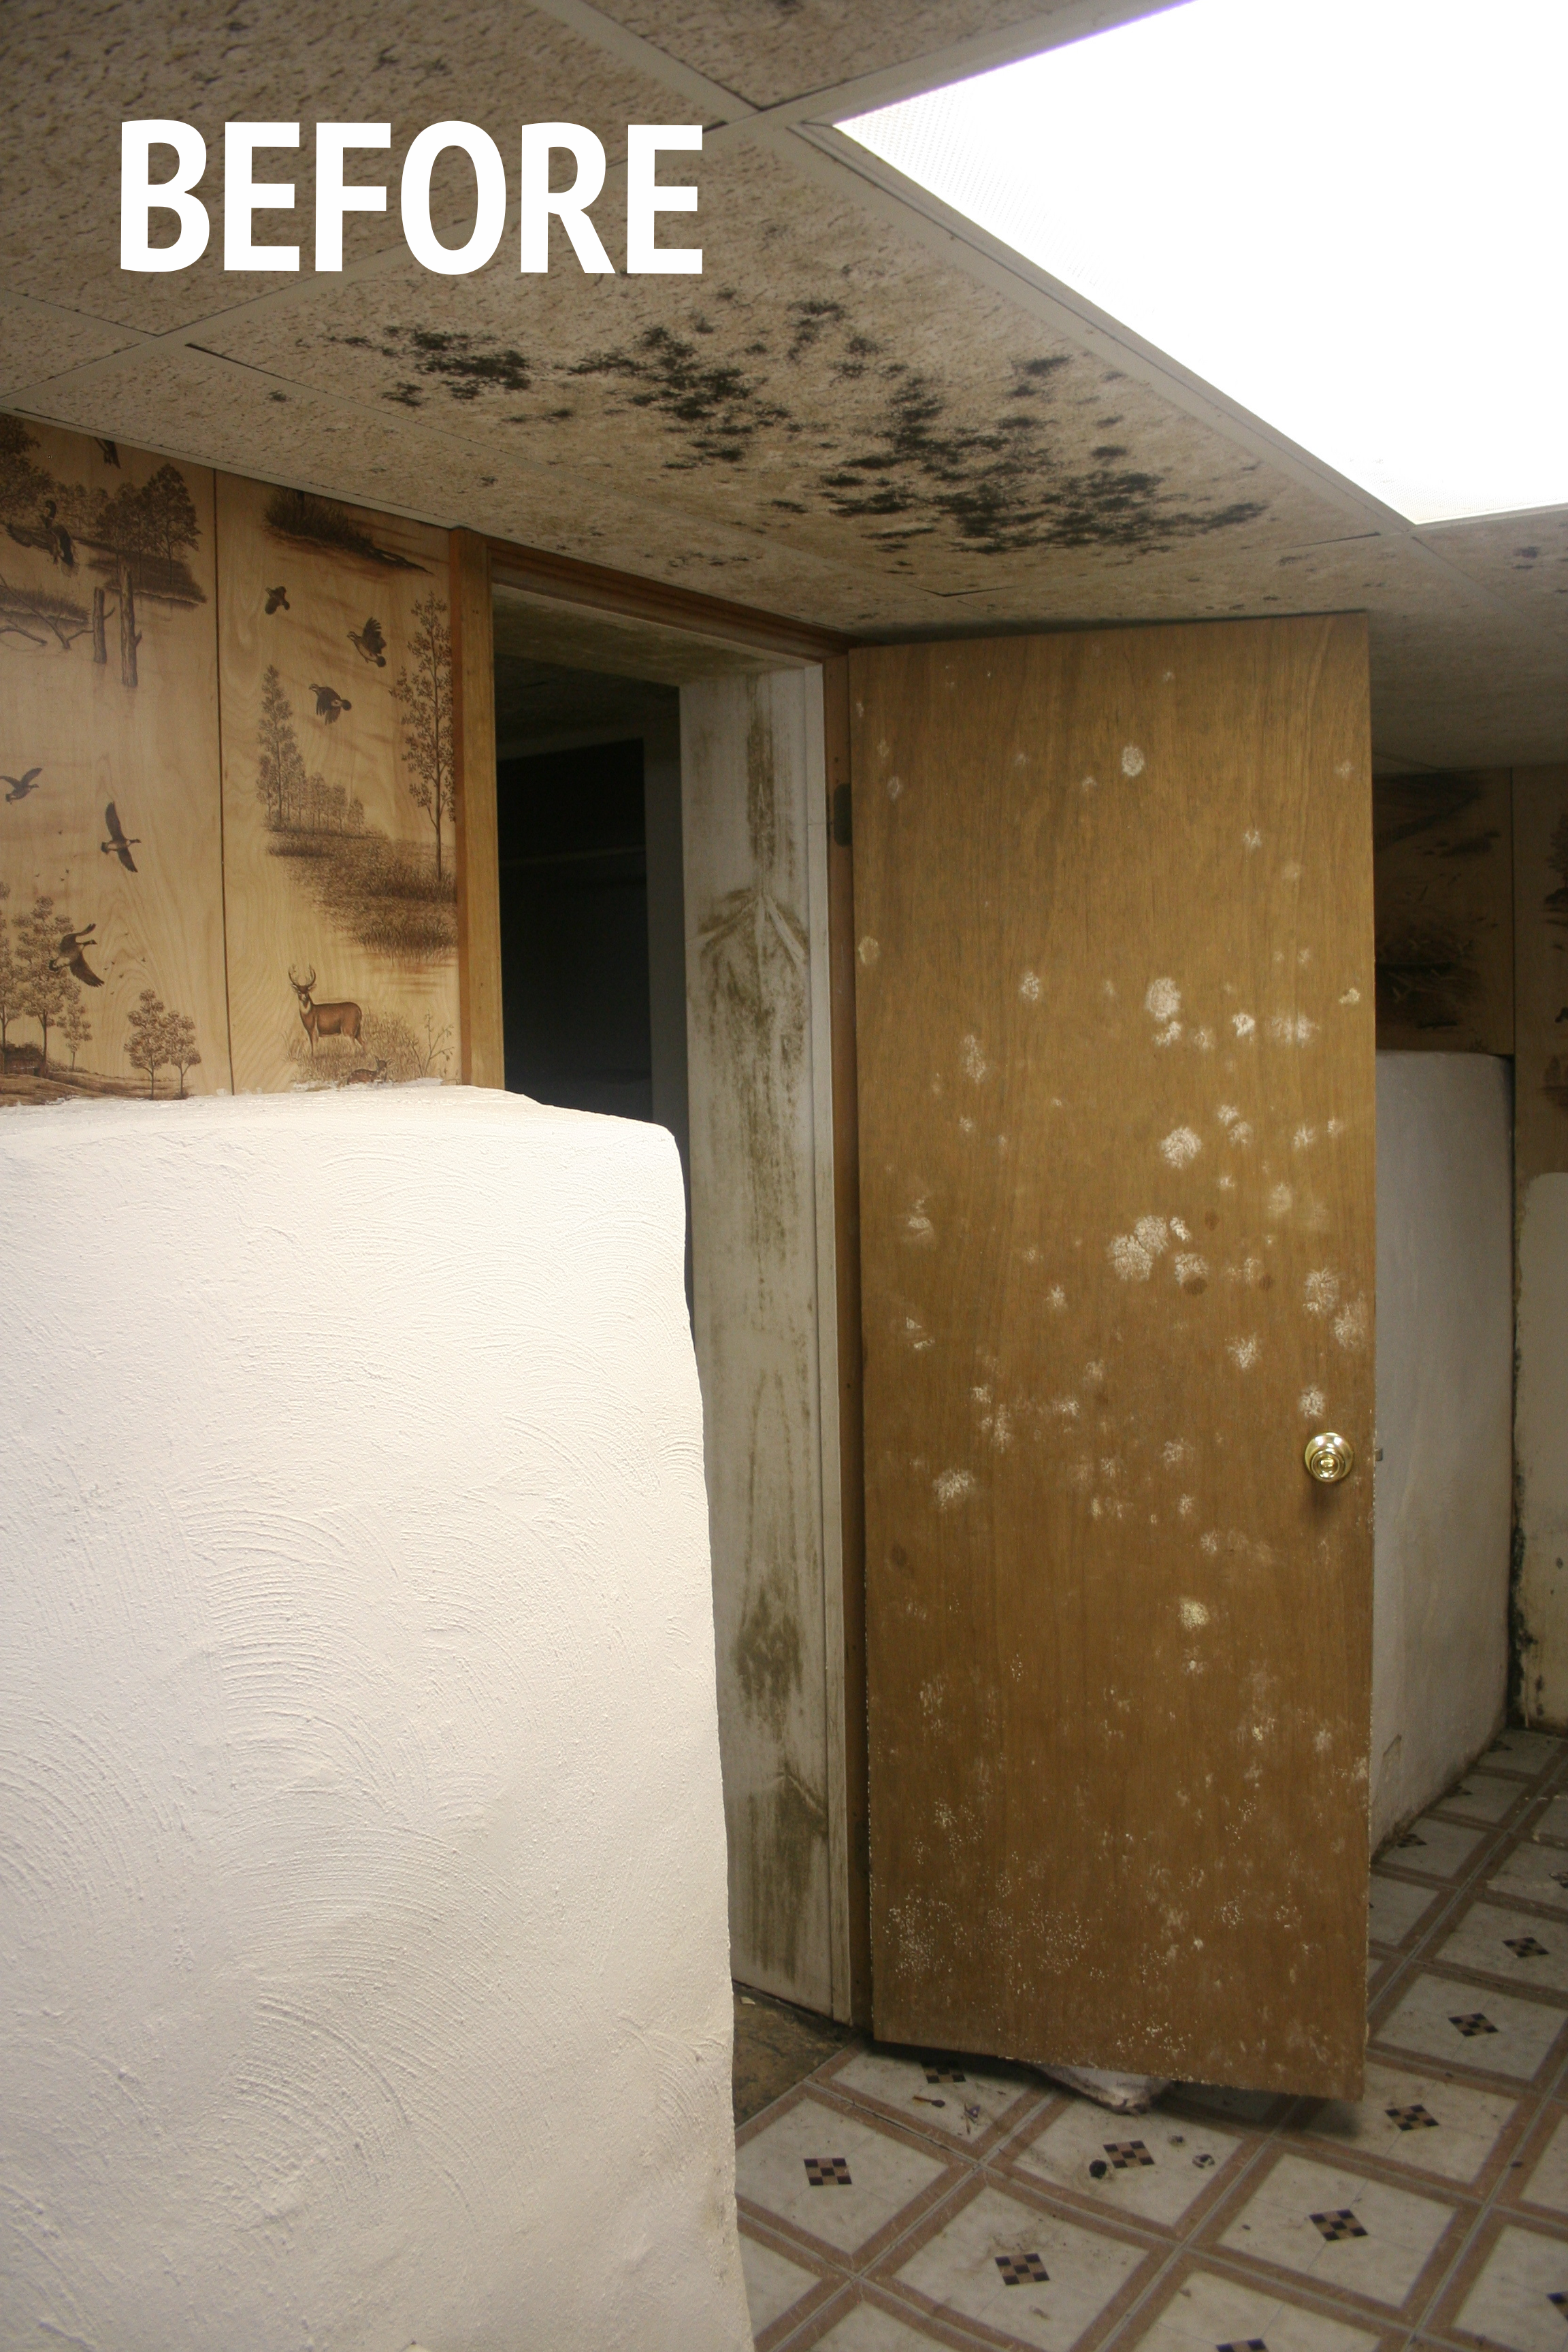 How To Remove Mold & Mildew From Walls - Stevie Storck Design Co.